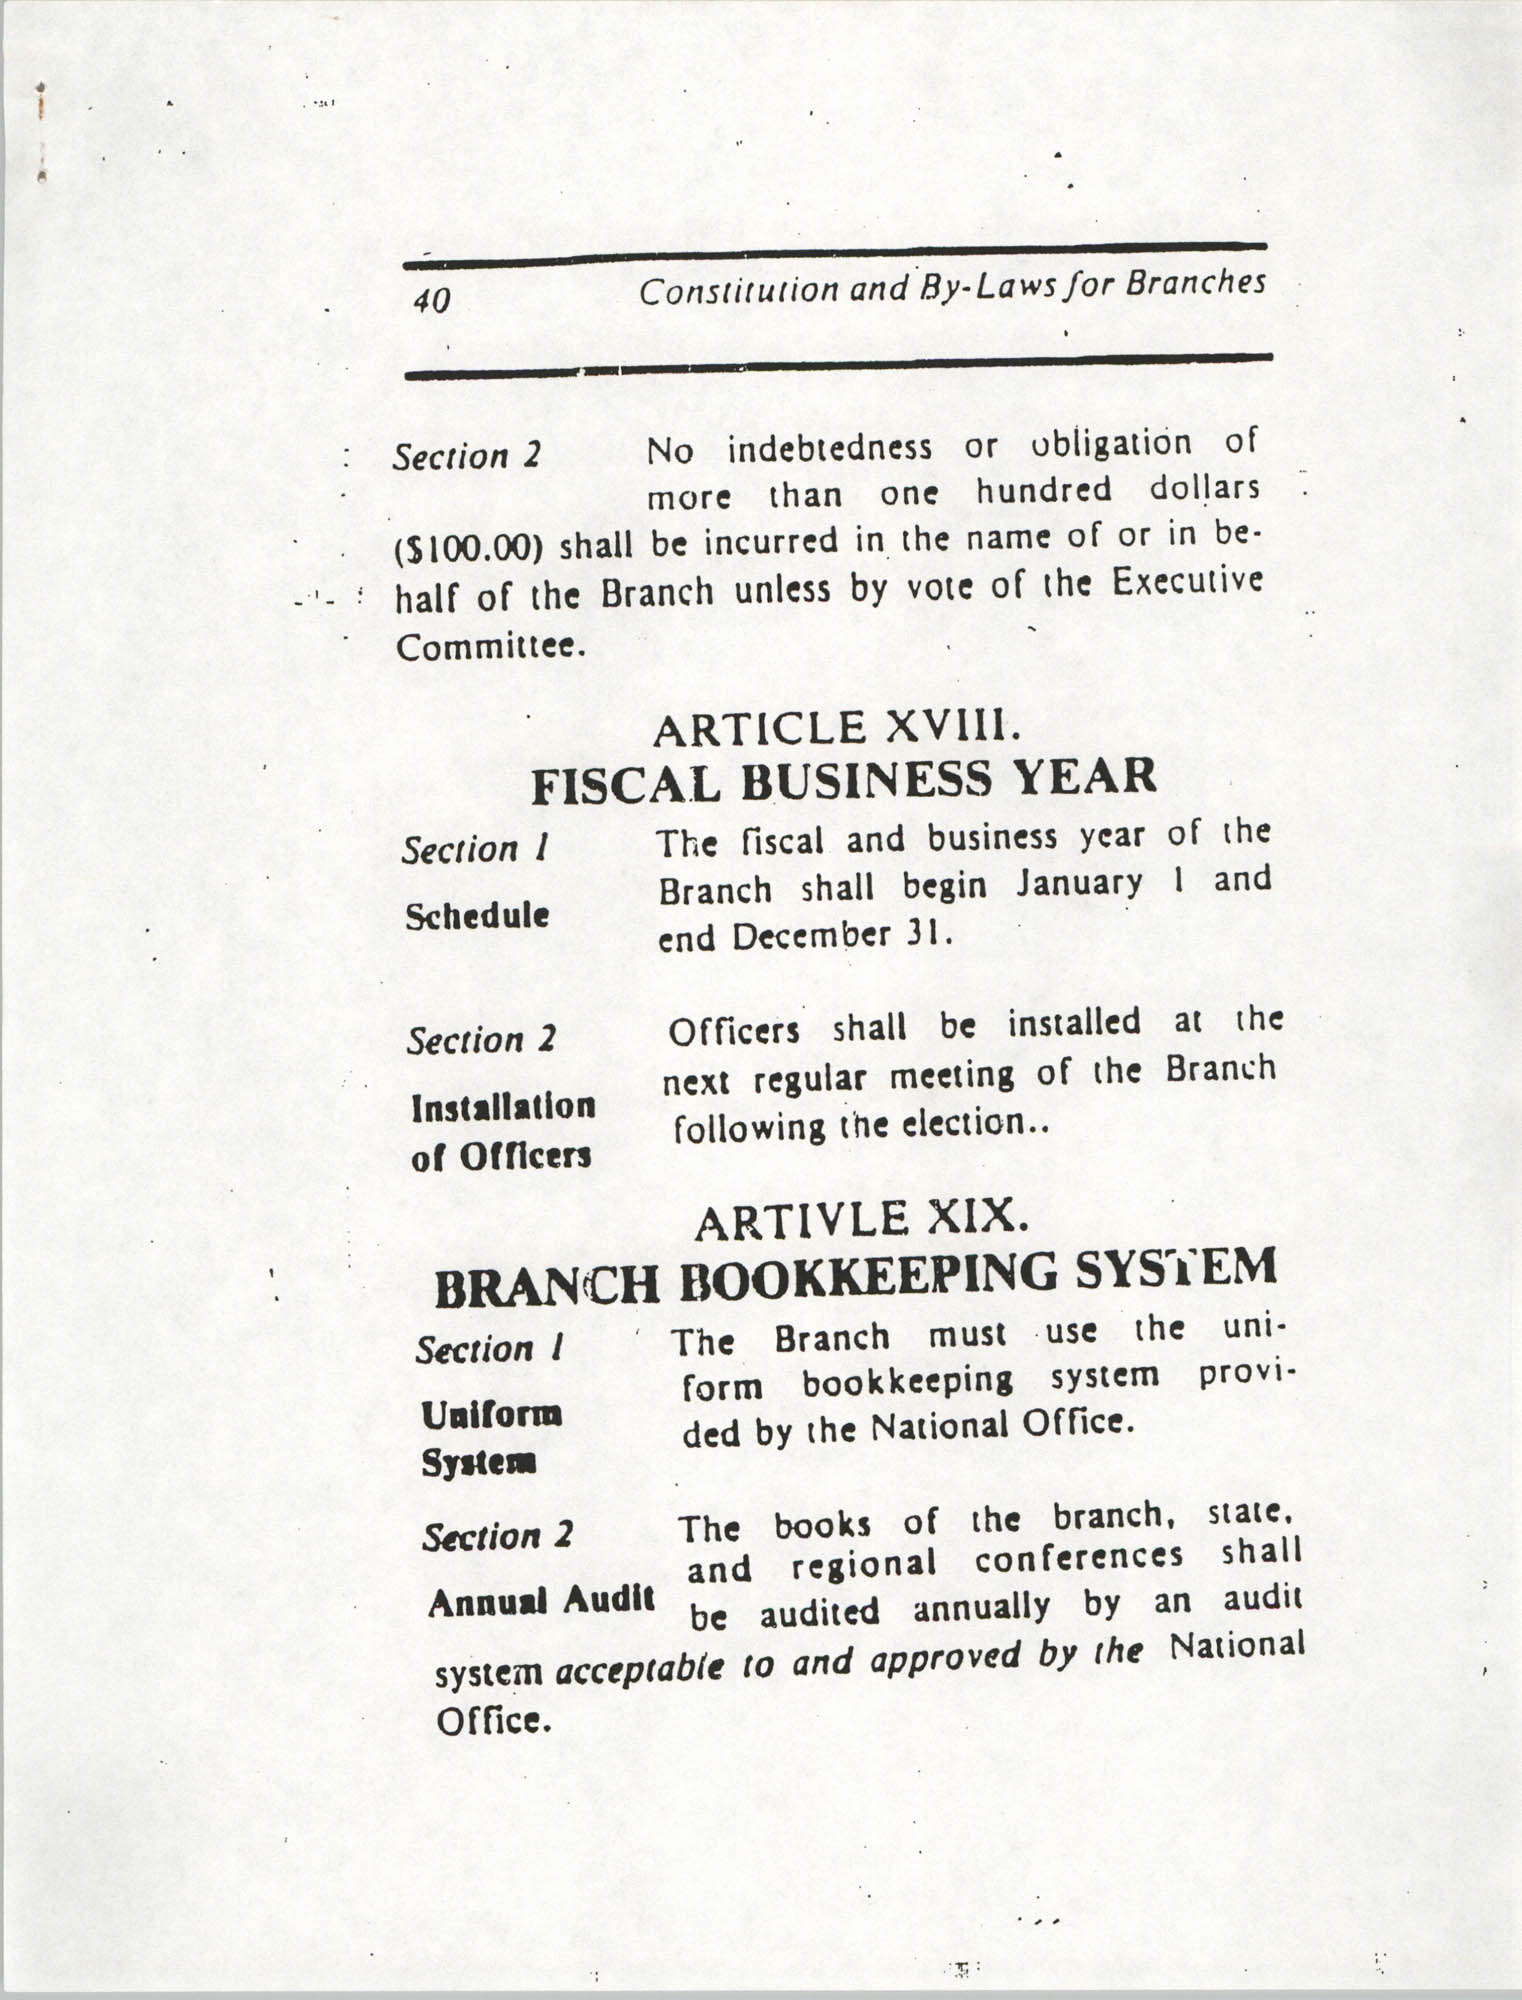 Constitution and By-Laws for Branches of the NAACP, March 1992, Page 40